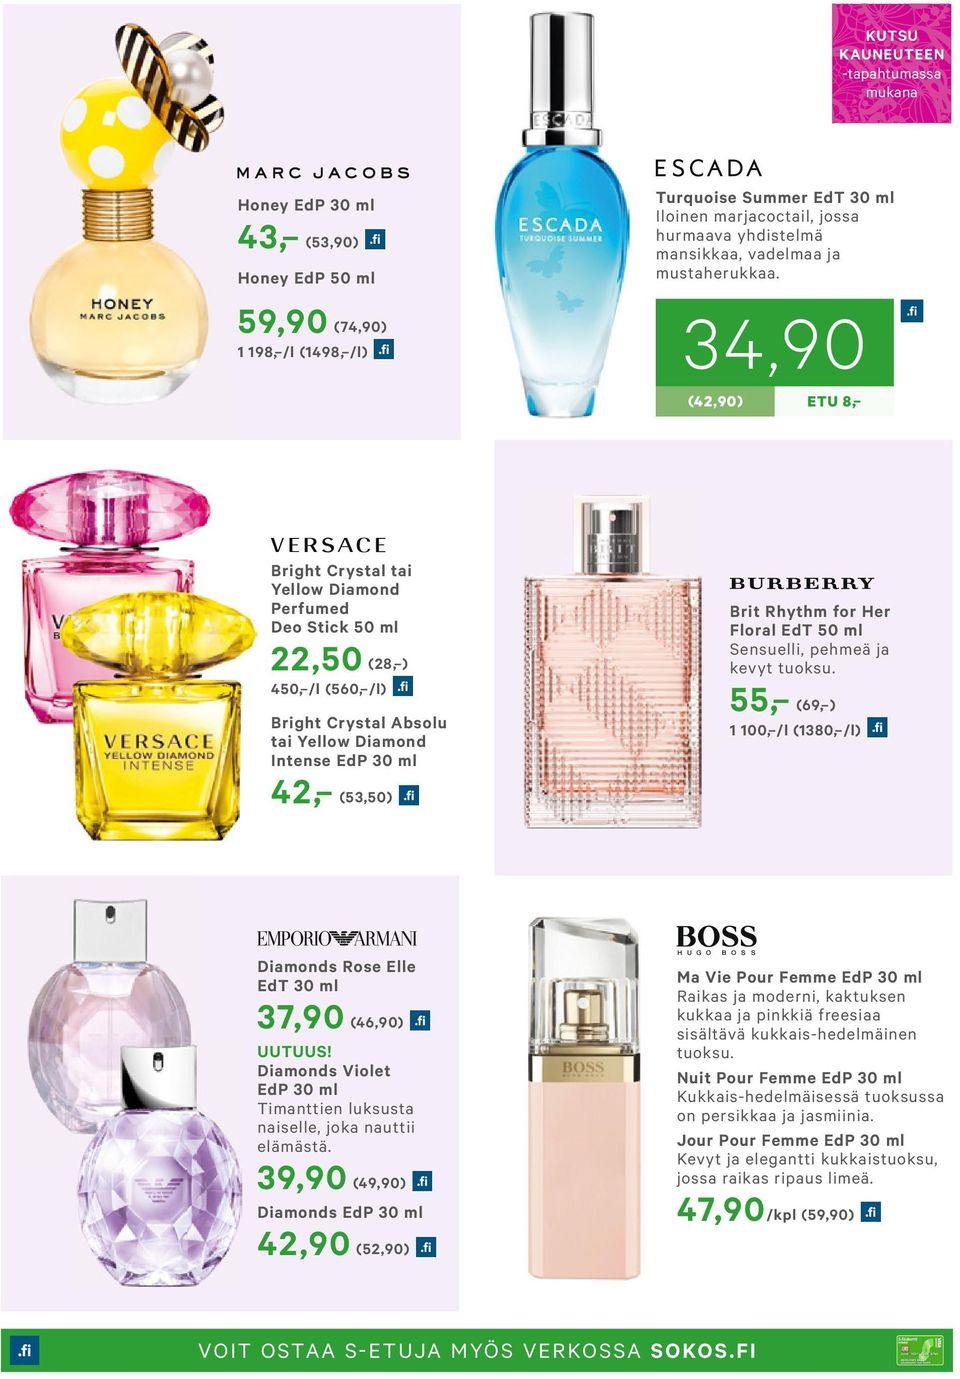 34,90 (42,90) ETU 8, Bright Crystal tai Yellow Diamond Perfumed Deo Stick 50 ml 22,50 (28, ) 450, /l (560, /l) Bright Crystal Absolu tai Yellow Diamond Intense EdP 30 ml 4 2, (53,50) Brit Rhythm for